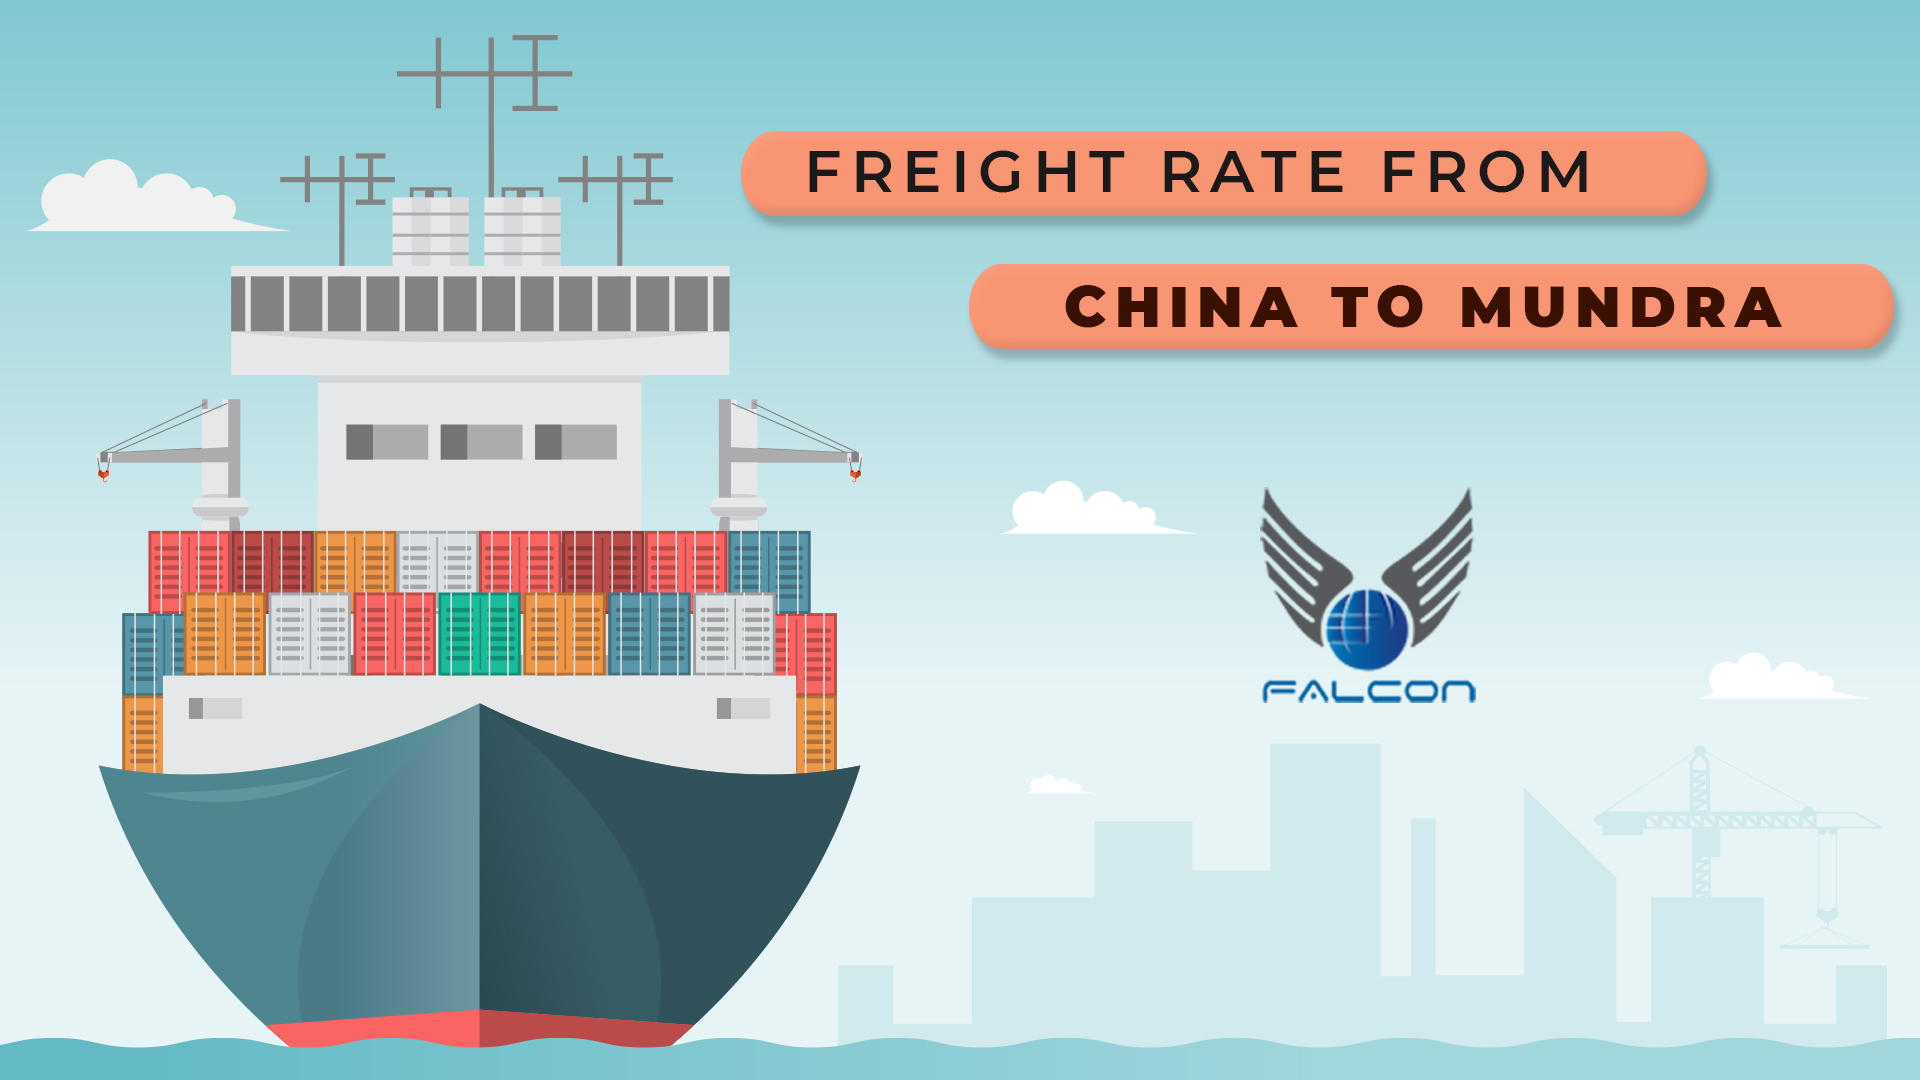 Freight rate from China to Mundra